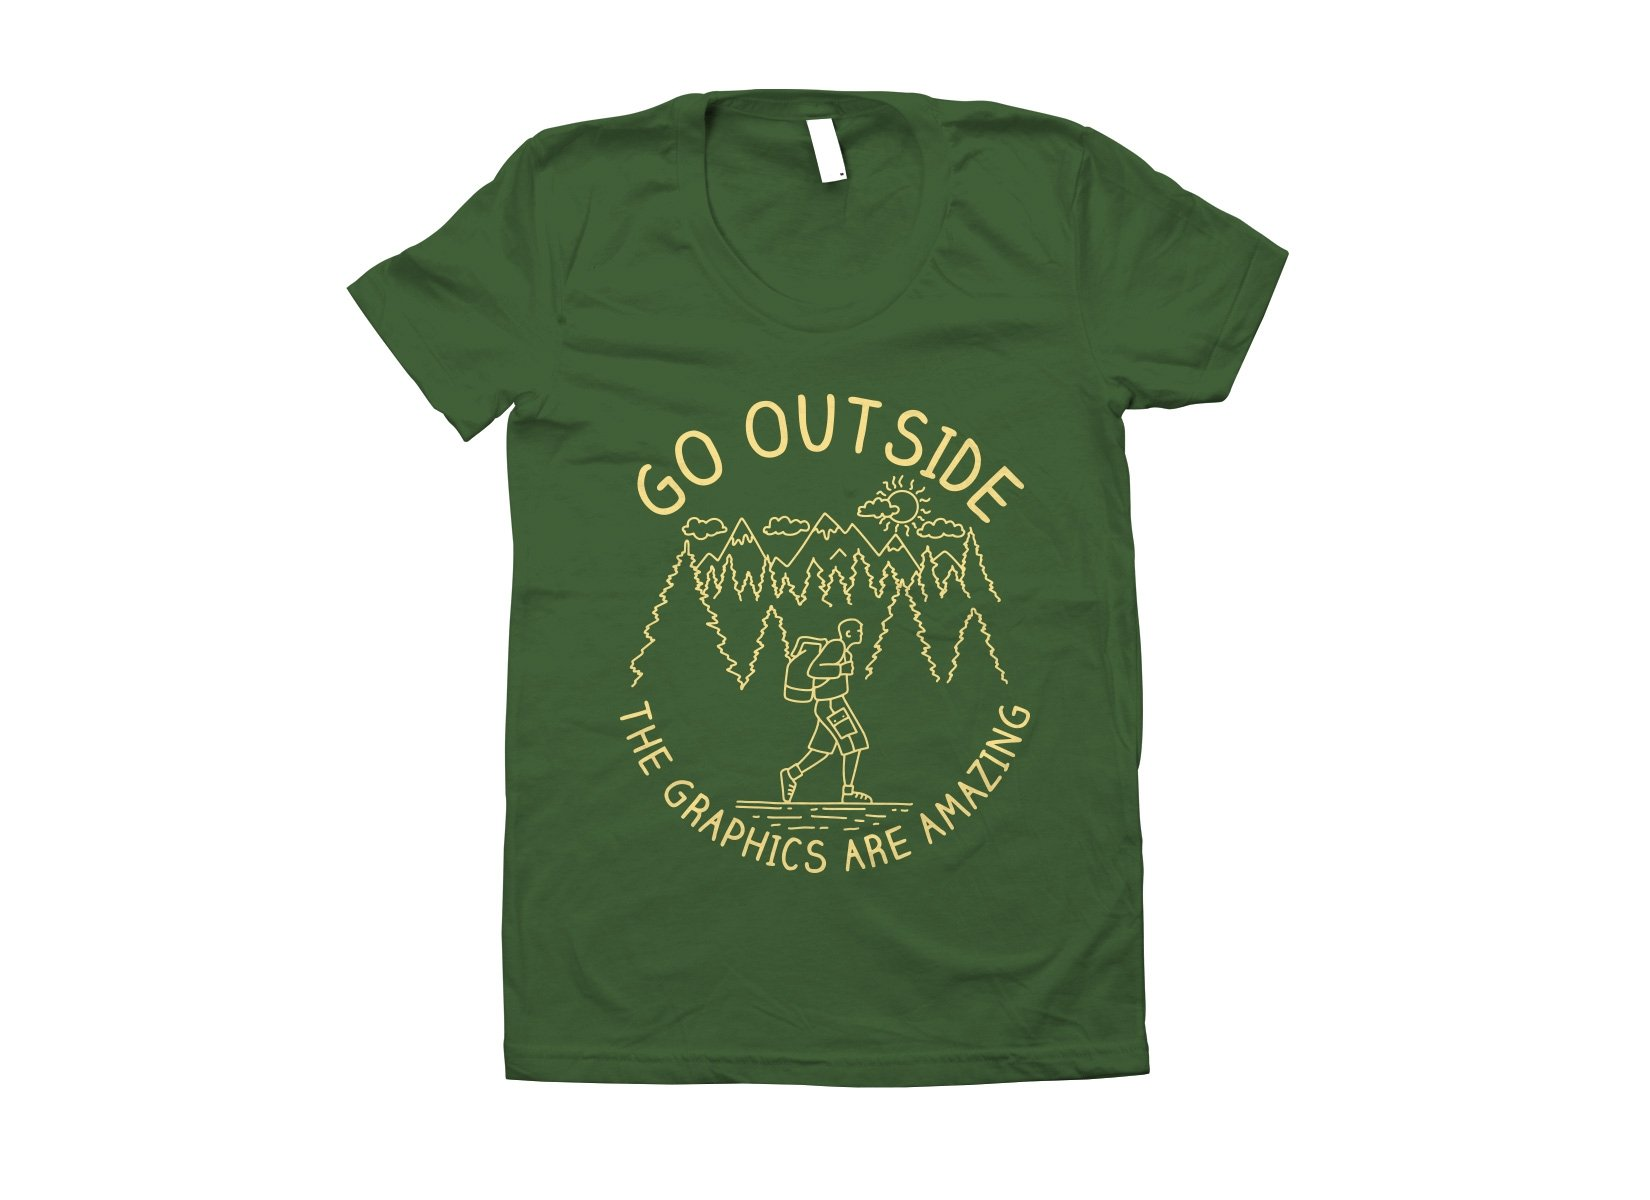 Go Outside The Graphics Are Amazing on Juniors T-Shirt